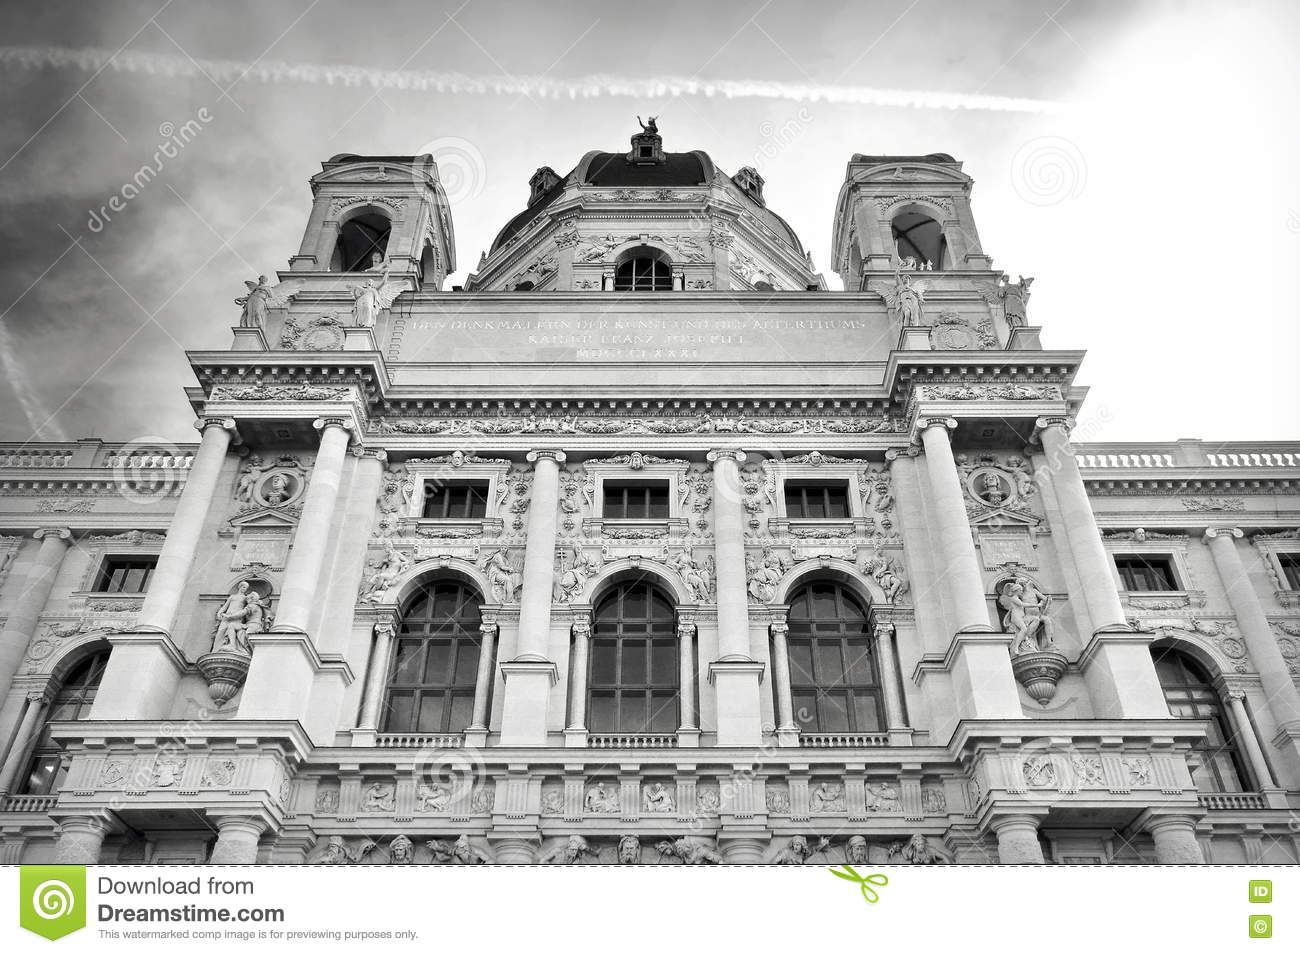 Download Museum Of Art History - Landmark Attraction In Vienna, Austria Stock Image - Image of classical, fine: 74274705